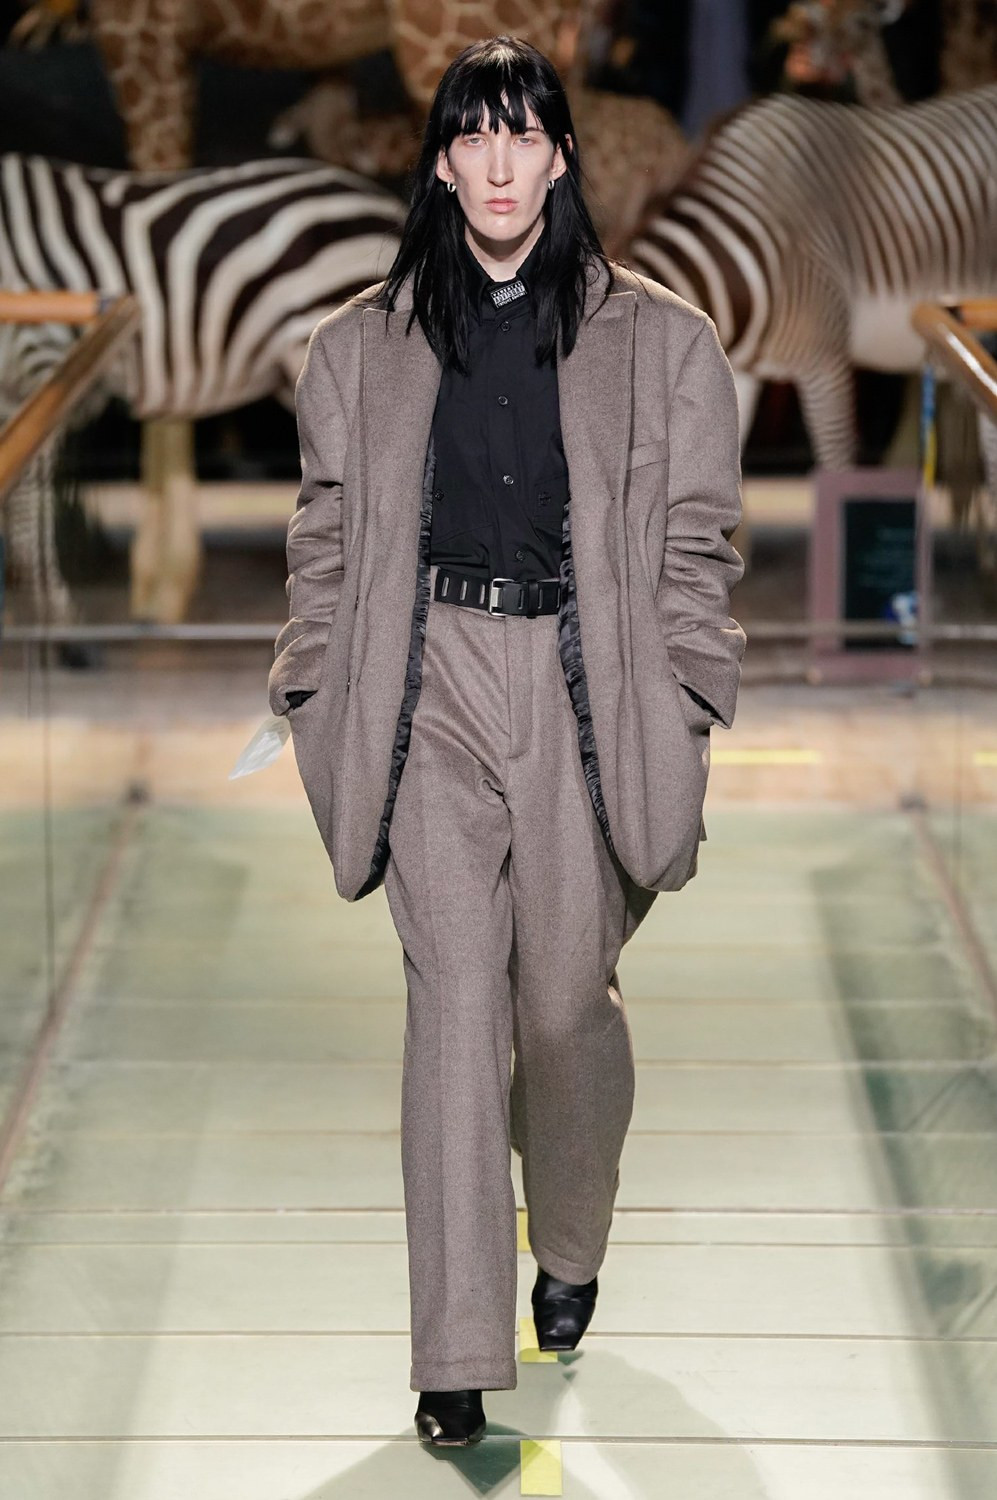 https---vetements-aw19-dtf-magazine.com-image-2019-01-vetements-fall-winter-2019-paris-fashion-week-05